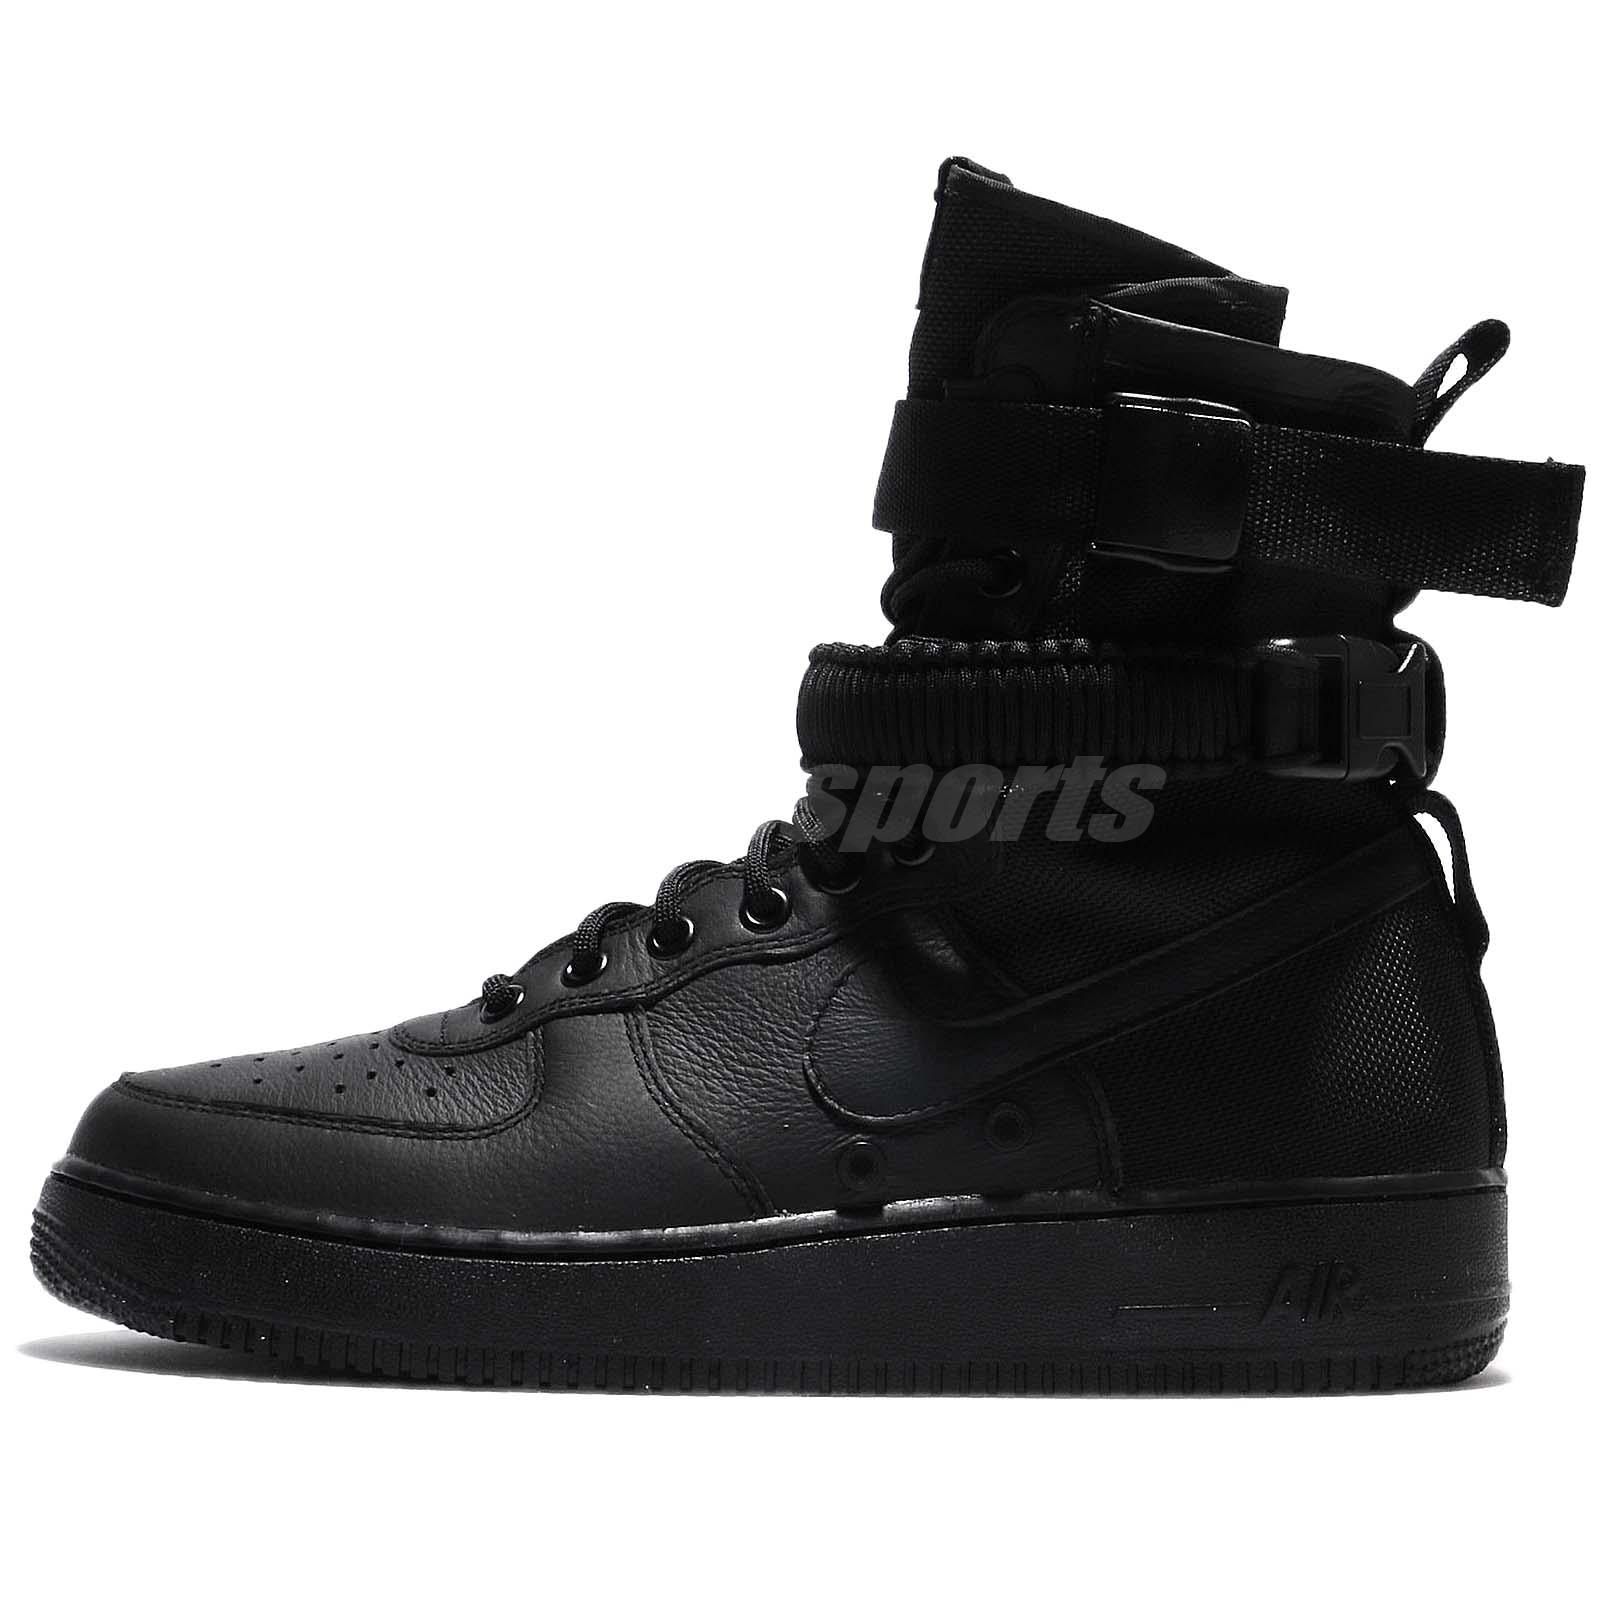 Nike SF AF1 Special Field Triple Black Friday Air Force 1 AF1 Men 864024003